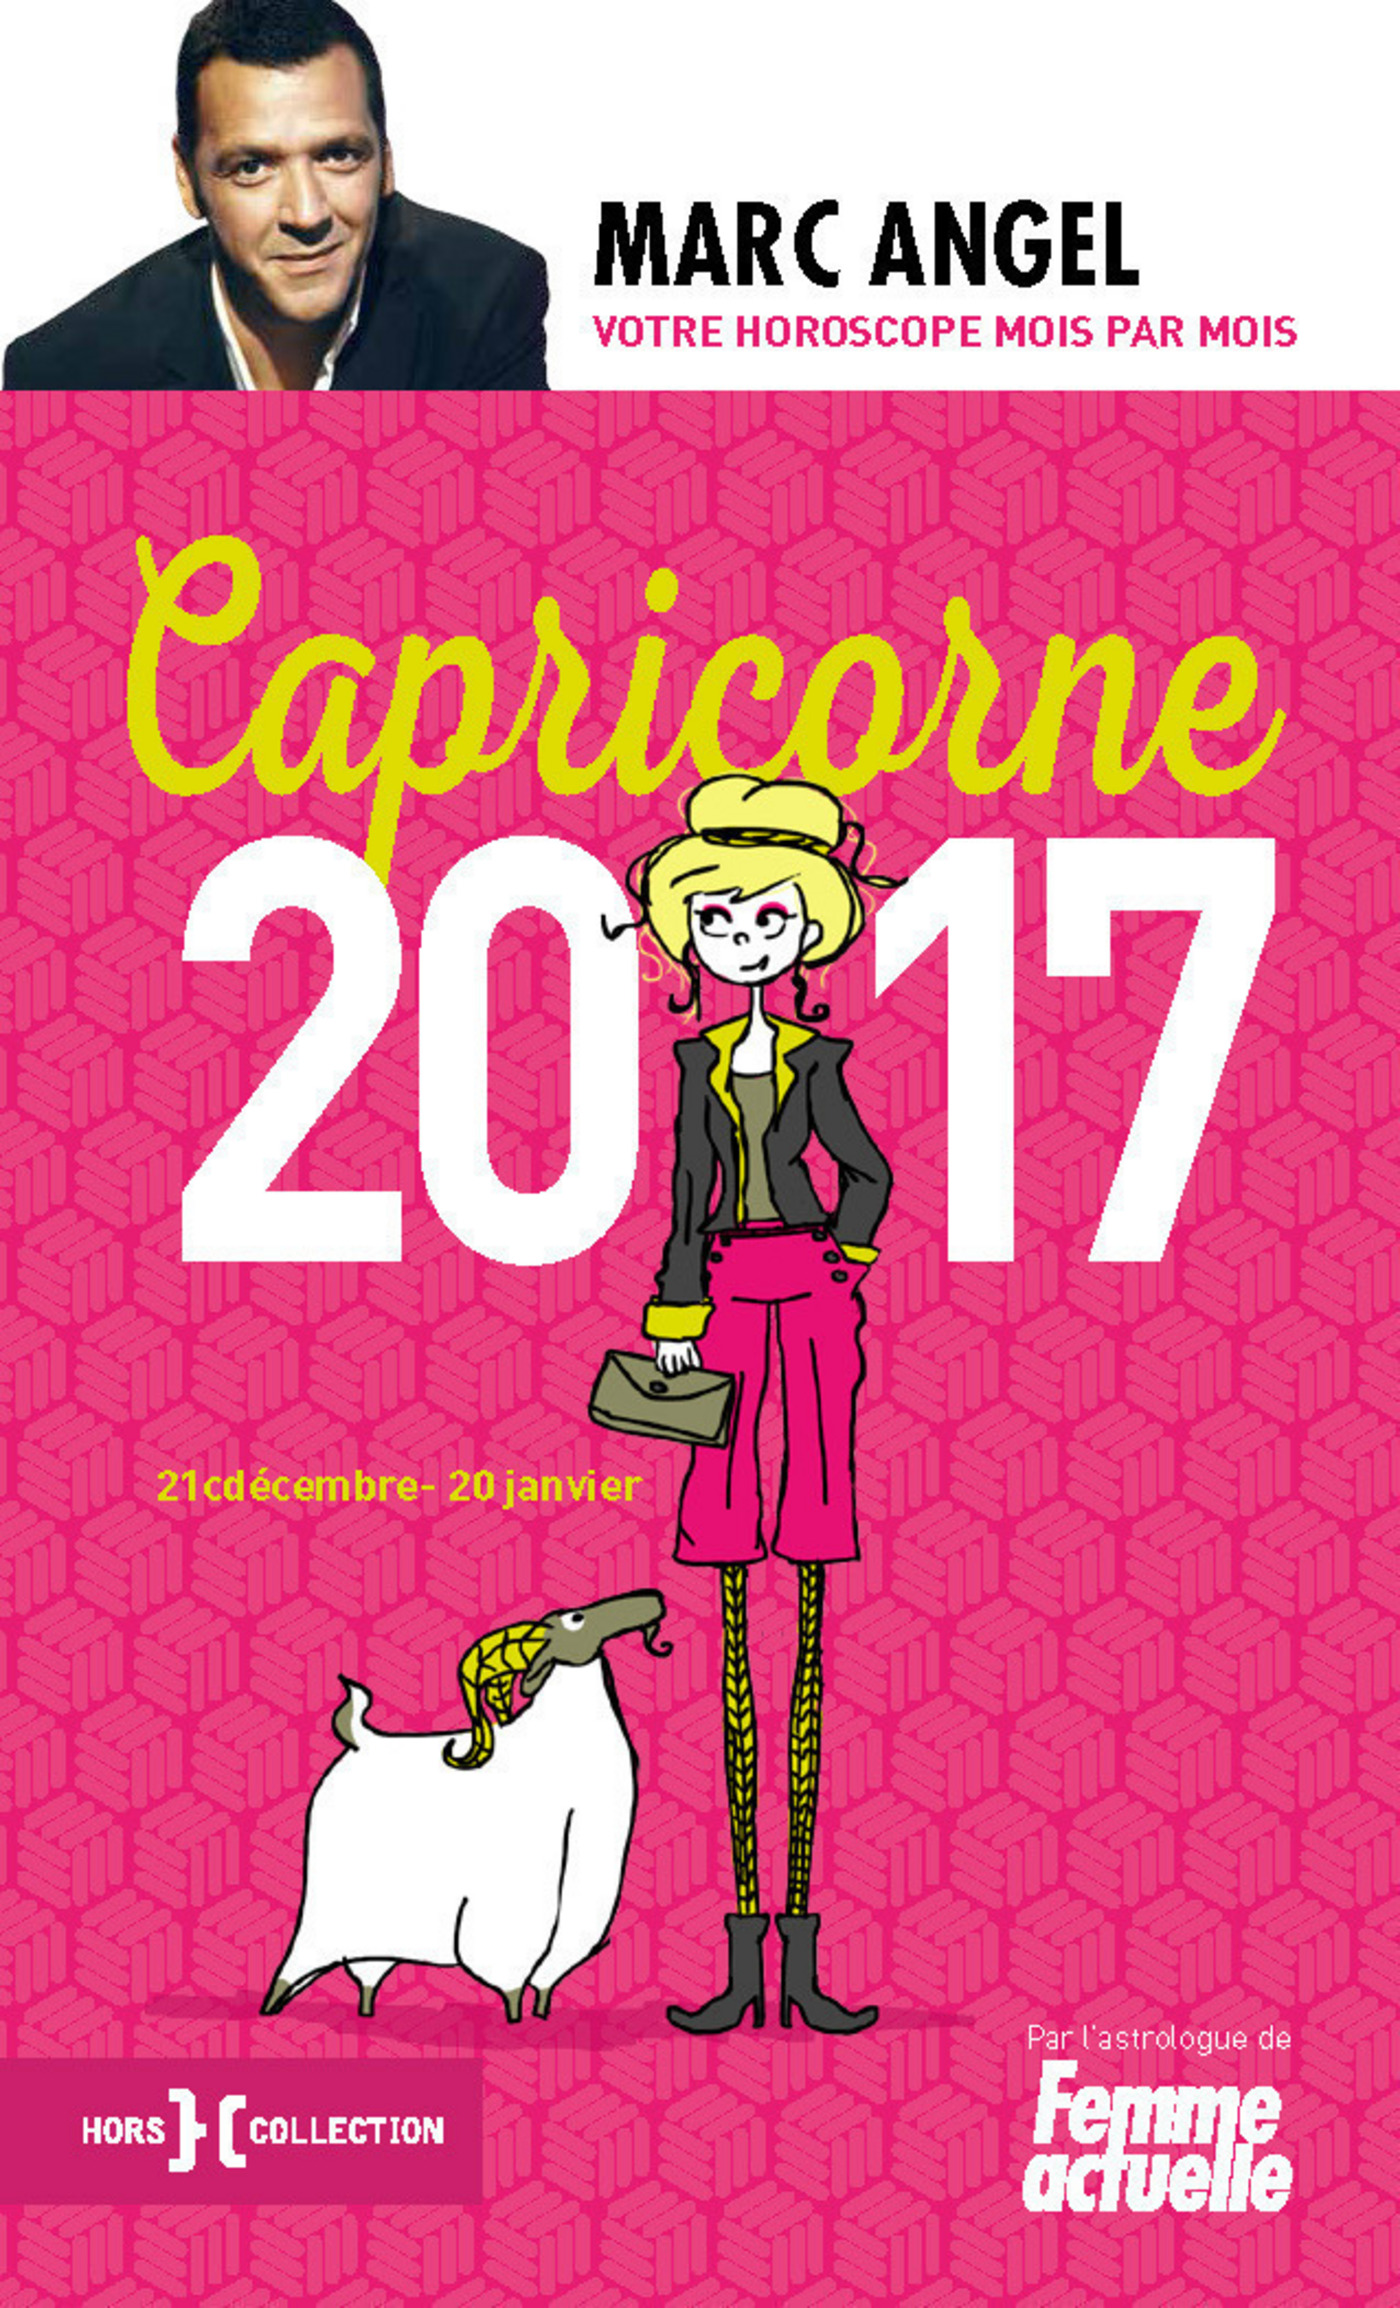 Capricorne 2017 (ebook)